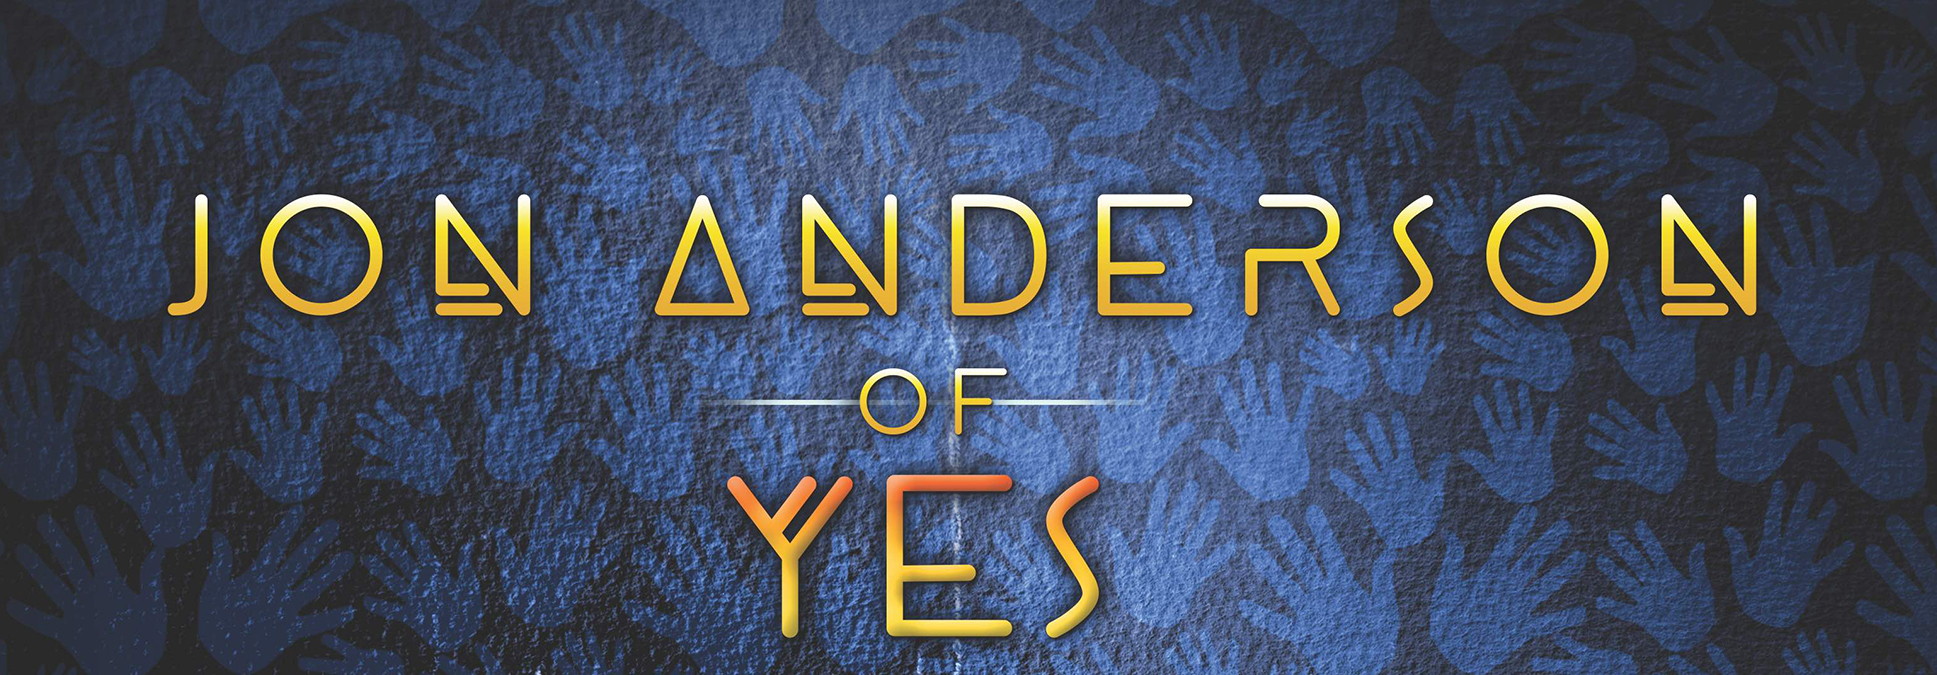 Jon Anderson of Yes in Milwaukee at the Marcus Performing Arts Center